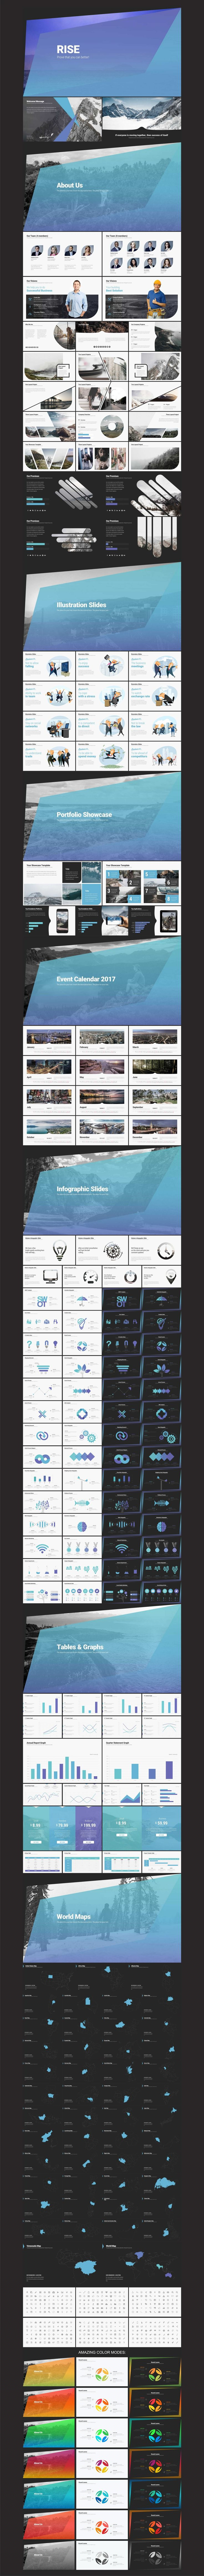 Rise Powerpoint Template by Evgeny Bagro // Inspiration for the EMRLD14 Team // www.emrld14.com